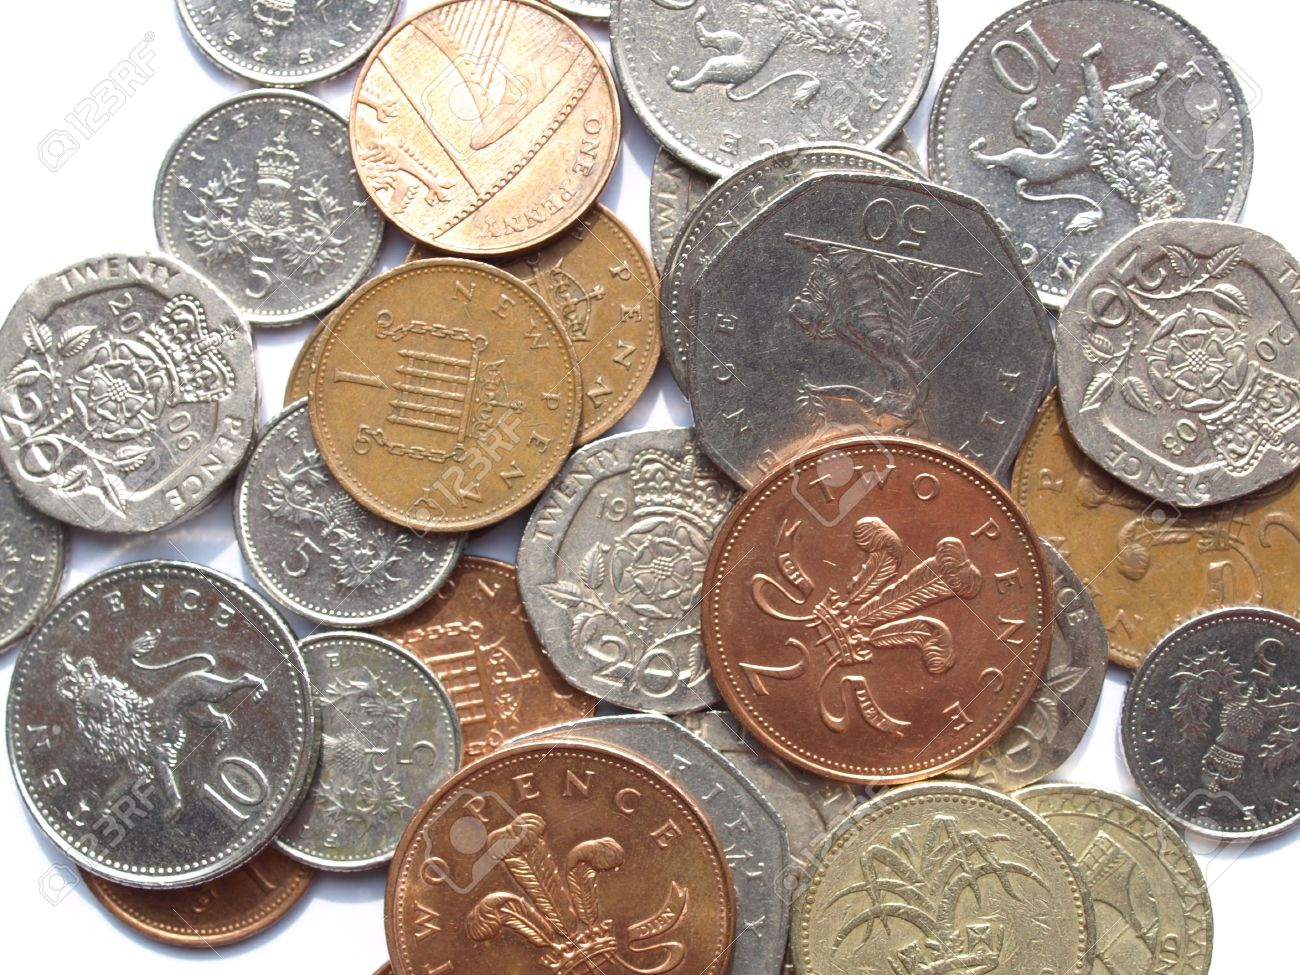 Range Of British Pound Coins (UK Currency) Stock Photo, Picture ...